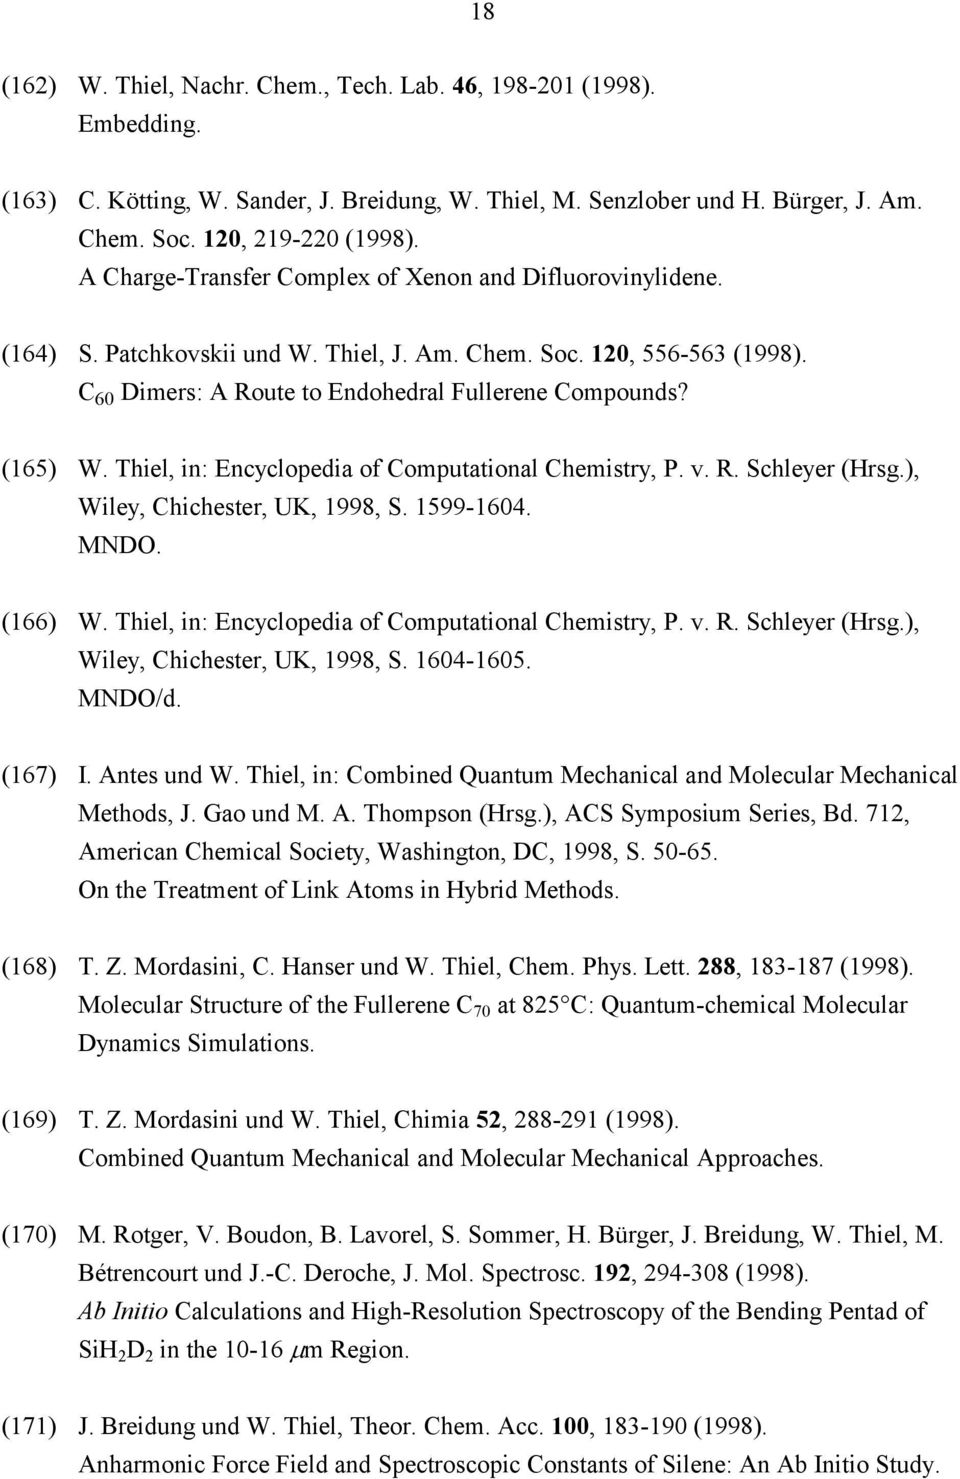 Thiel, in: Encyclopedia of Computational Chemistry, P. v. R. Schleyer (Hrsg.), Wiley, Chichester, UK, 1998, S. 1599-1604. MNDO. (166) W. Thiel, in: Encyclopedia of Computational Chemistry, P. v. R. Schleyer (Hrsg.), Wiley, Chichester, UK, 1998, S. 1604-1605.